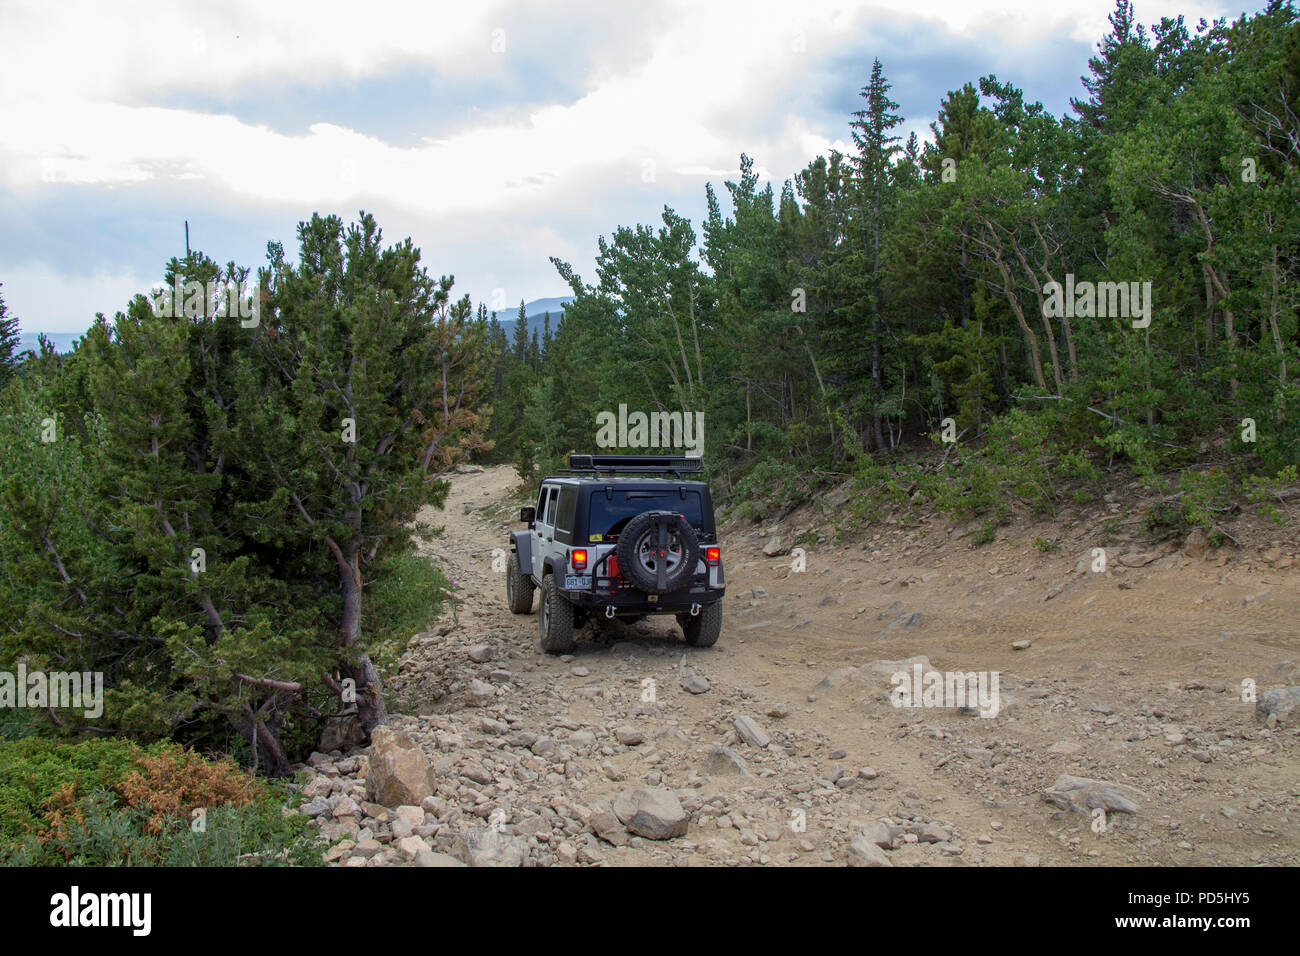 Exploring Yankee Hill in the Jeep - Stock Image